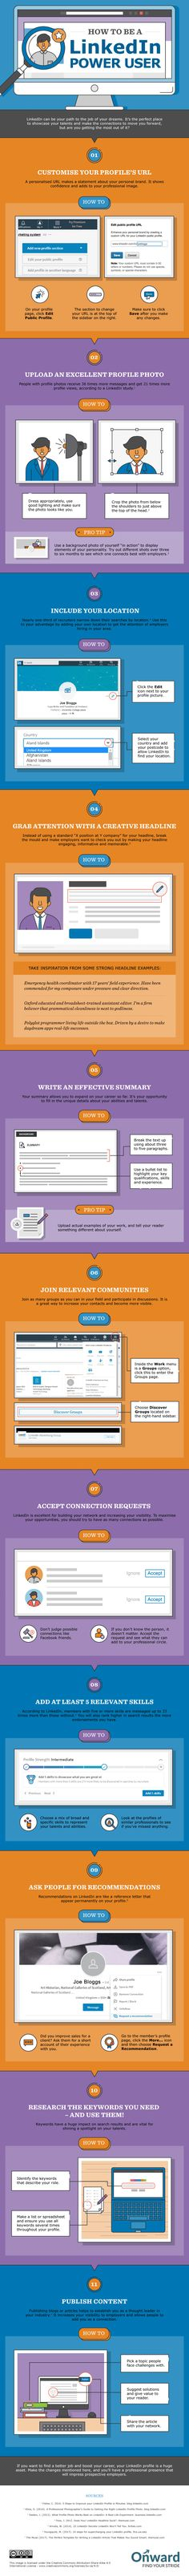 How to Become a LinkedIn Power User - #infographic